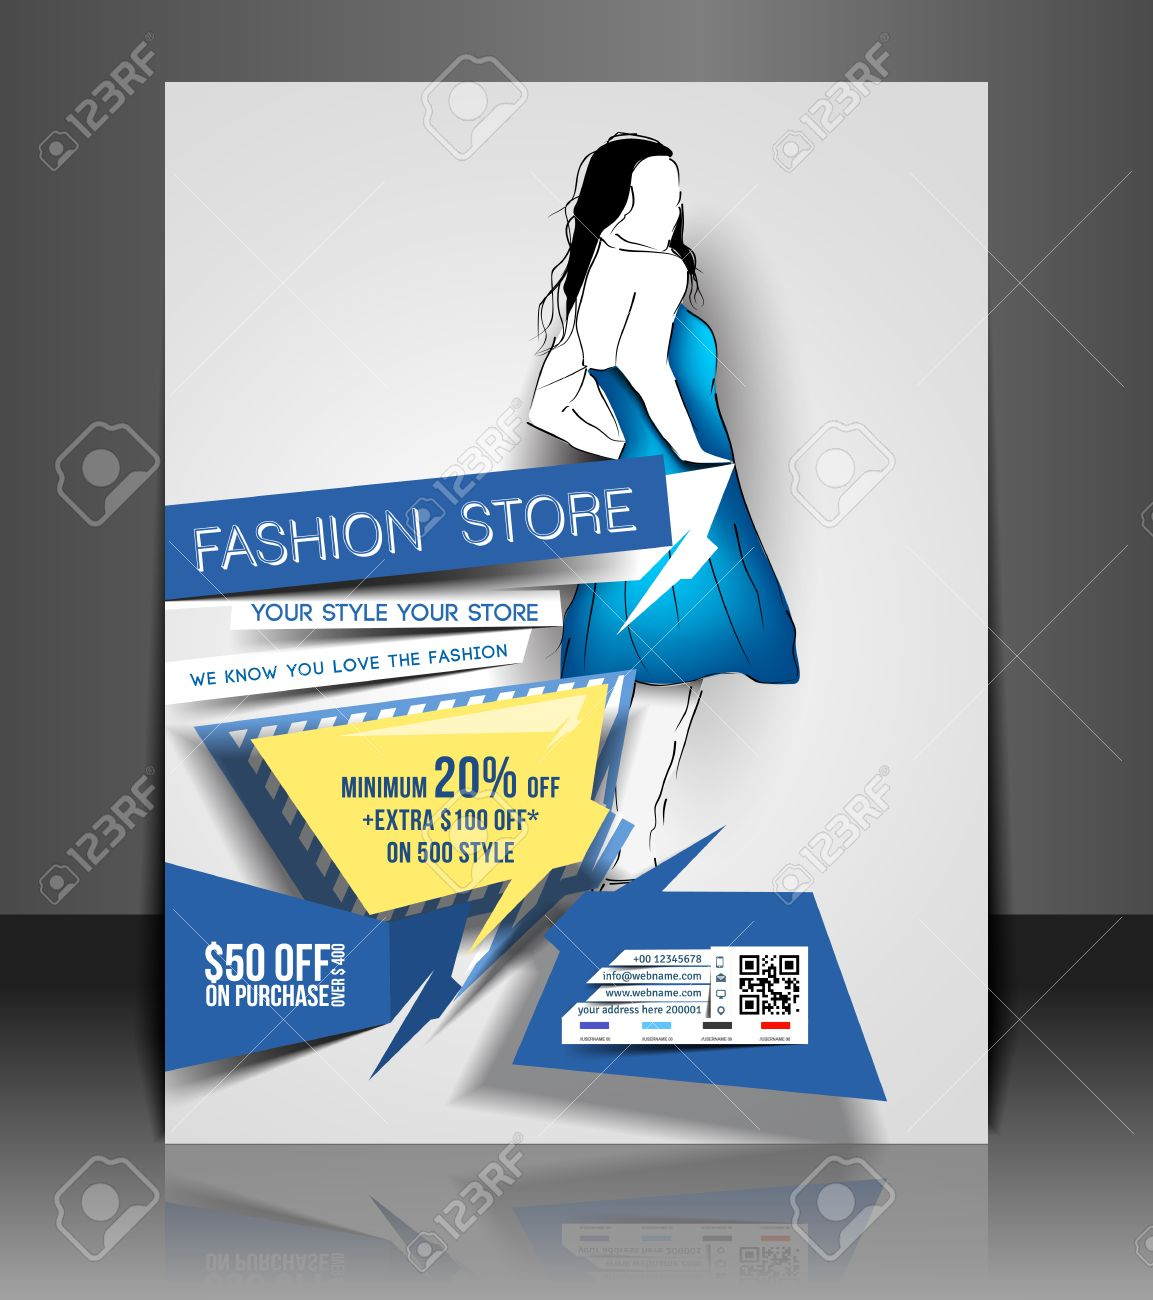 Fashion Store Flyer and Poster Template Design Royalty Free Cliparts – Fashion Poster Design